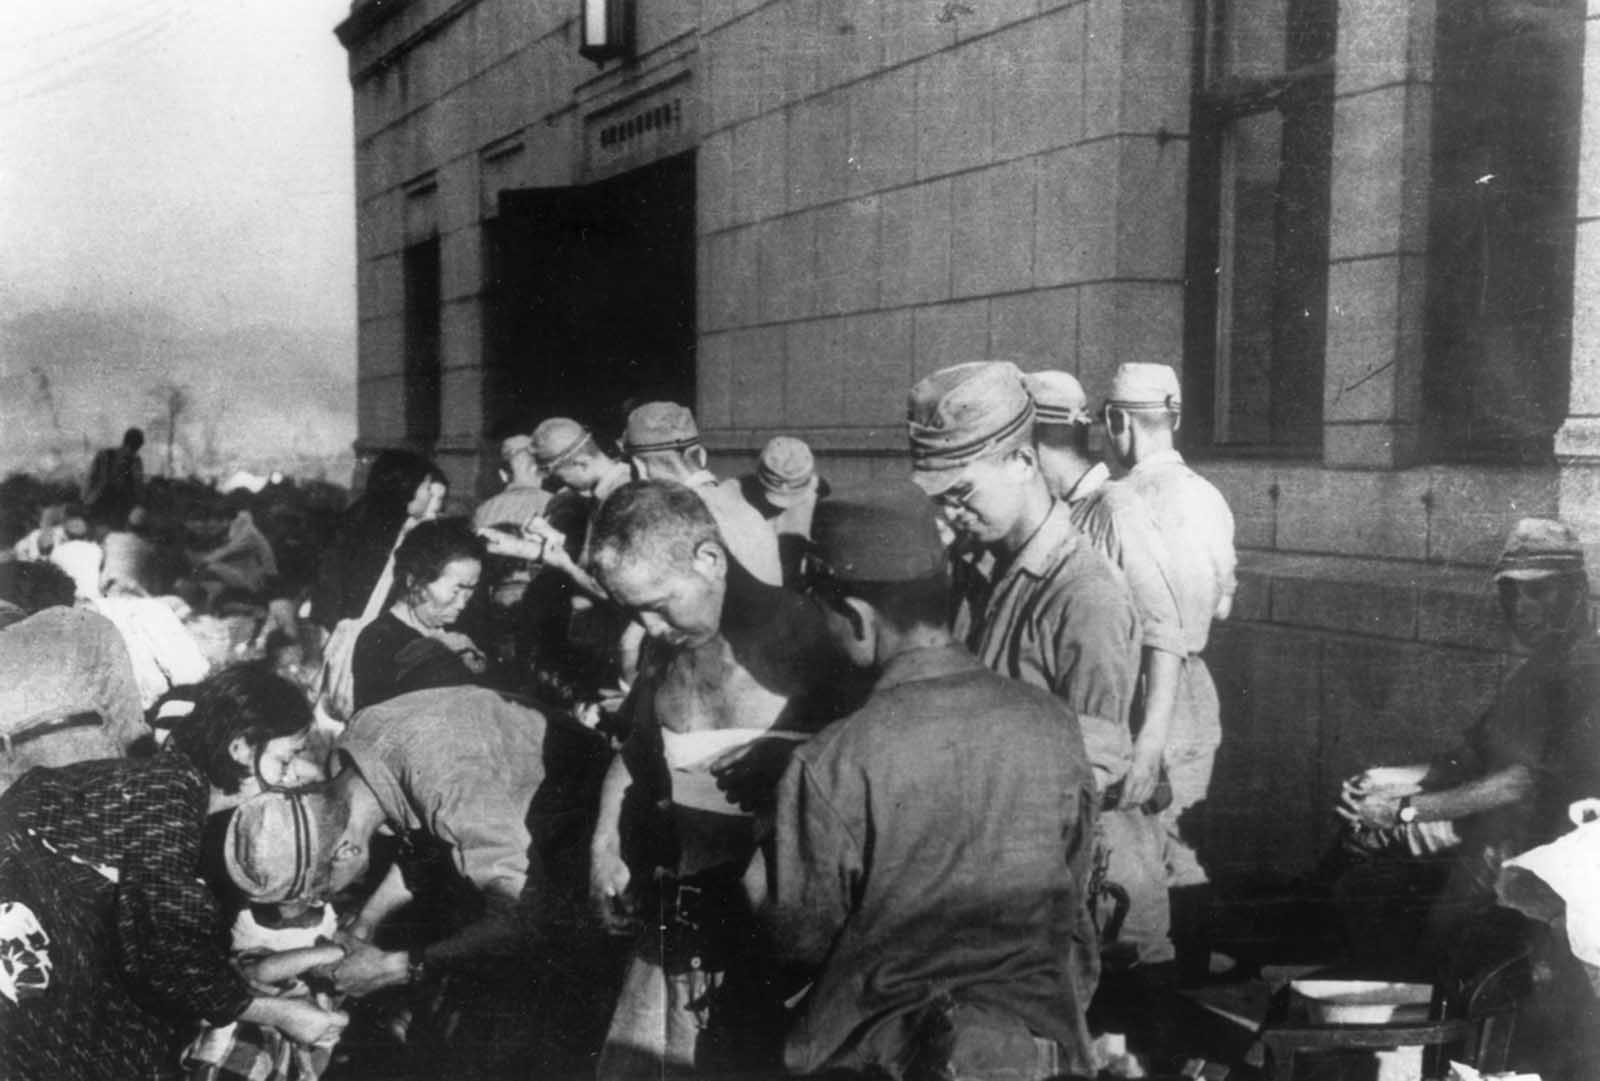 Shortly after the atomic bomb was dropped over the Japanese city of Hiroshima, survivors receive emergency treatment from military medics on August 6, 1945.